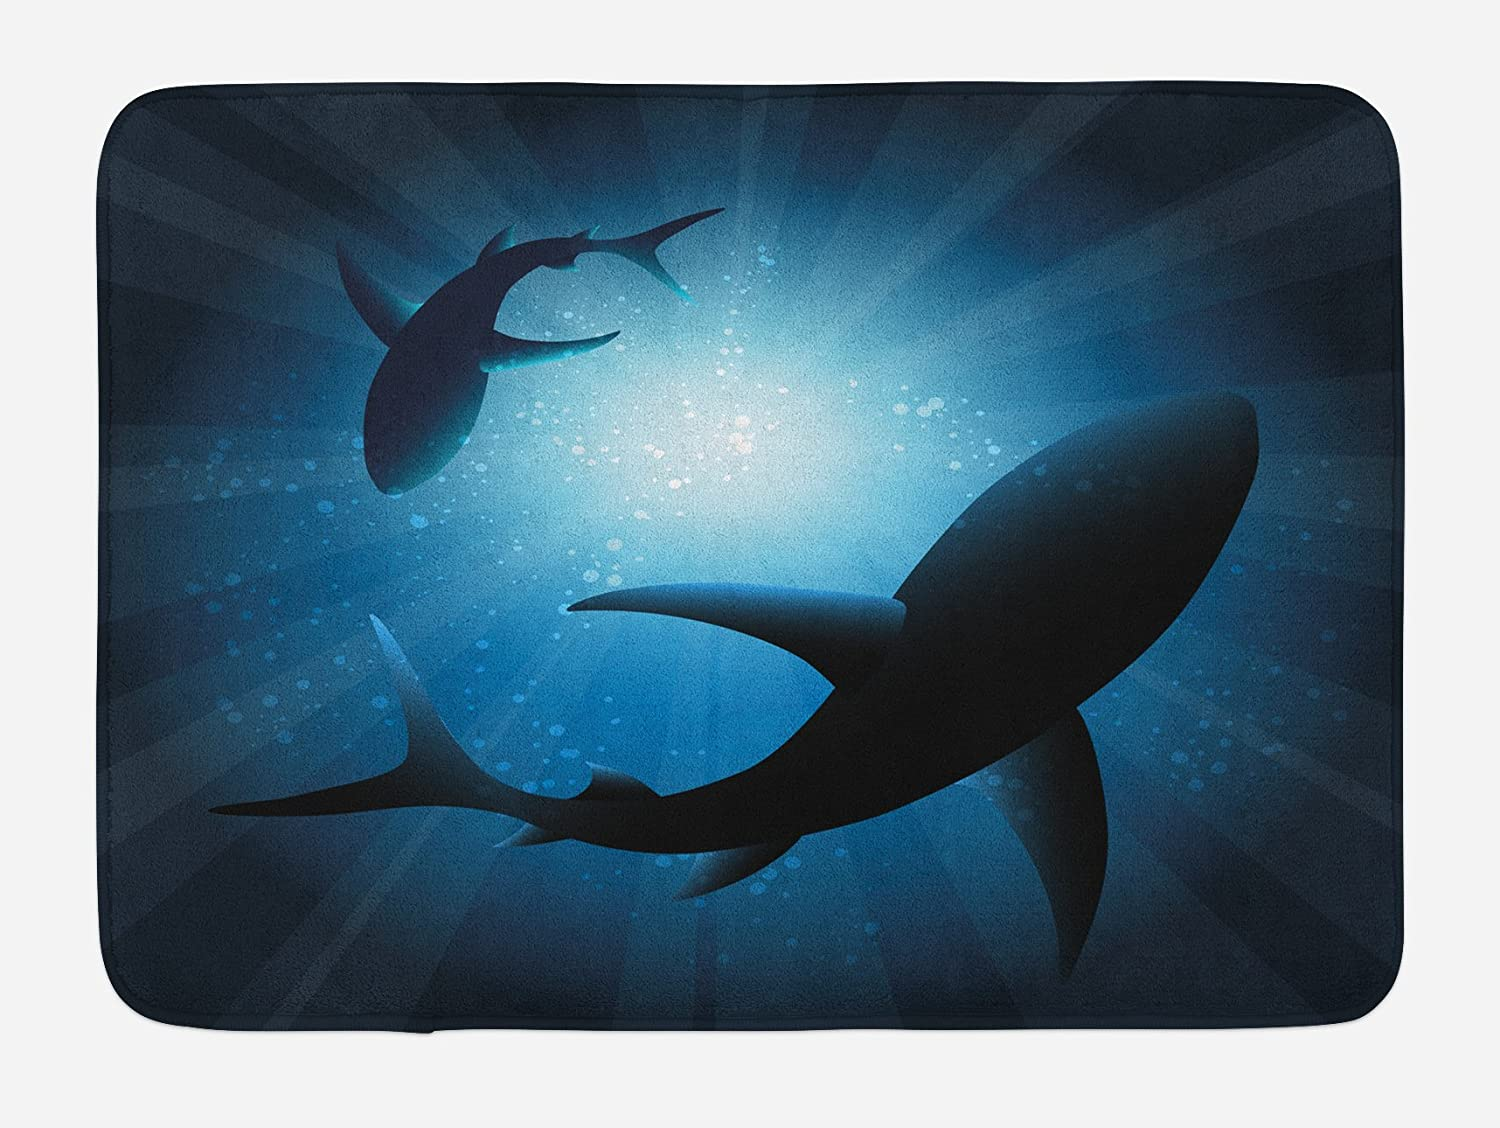 "Ambesonne Shark Bath Mat, Silhouette of The Fishes Swimming at Twilight Night Moon Mystic Sea Scenery, Plush Bathroom Decor Mat with Non Slip Backing, 29.5"" X 17.5"", Blue"